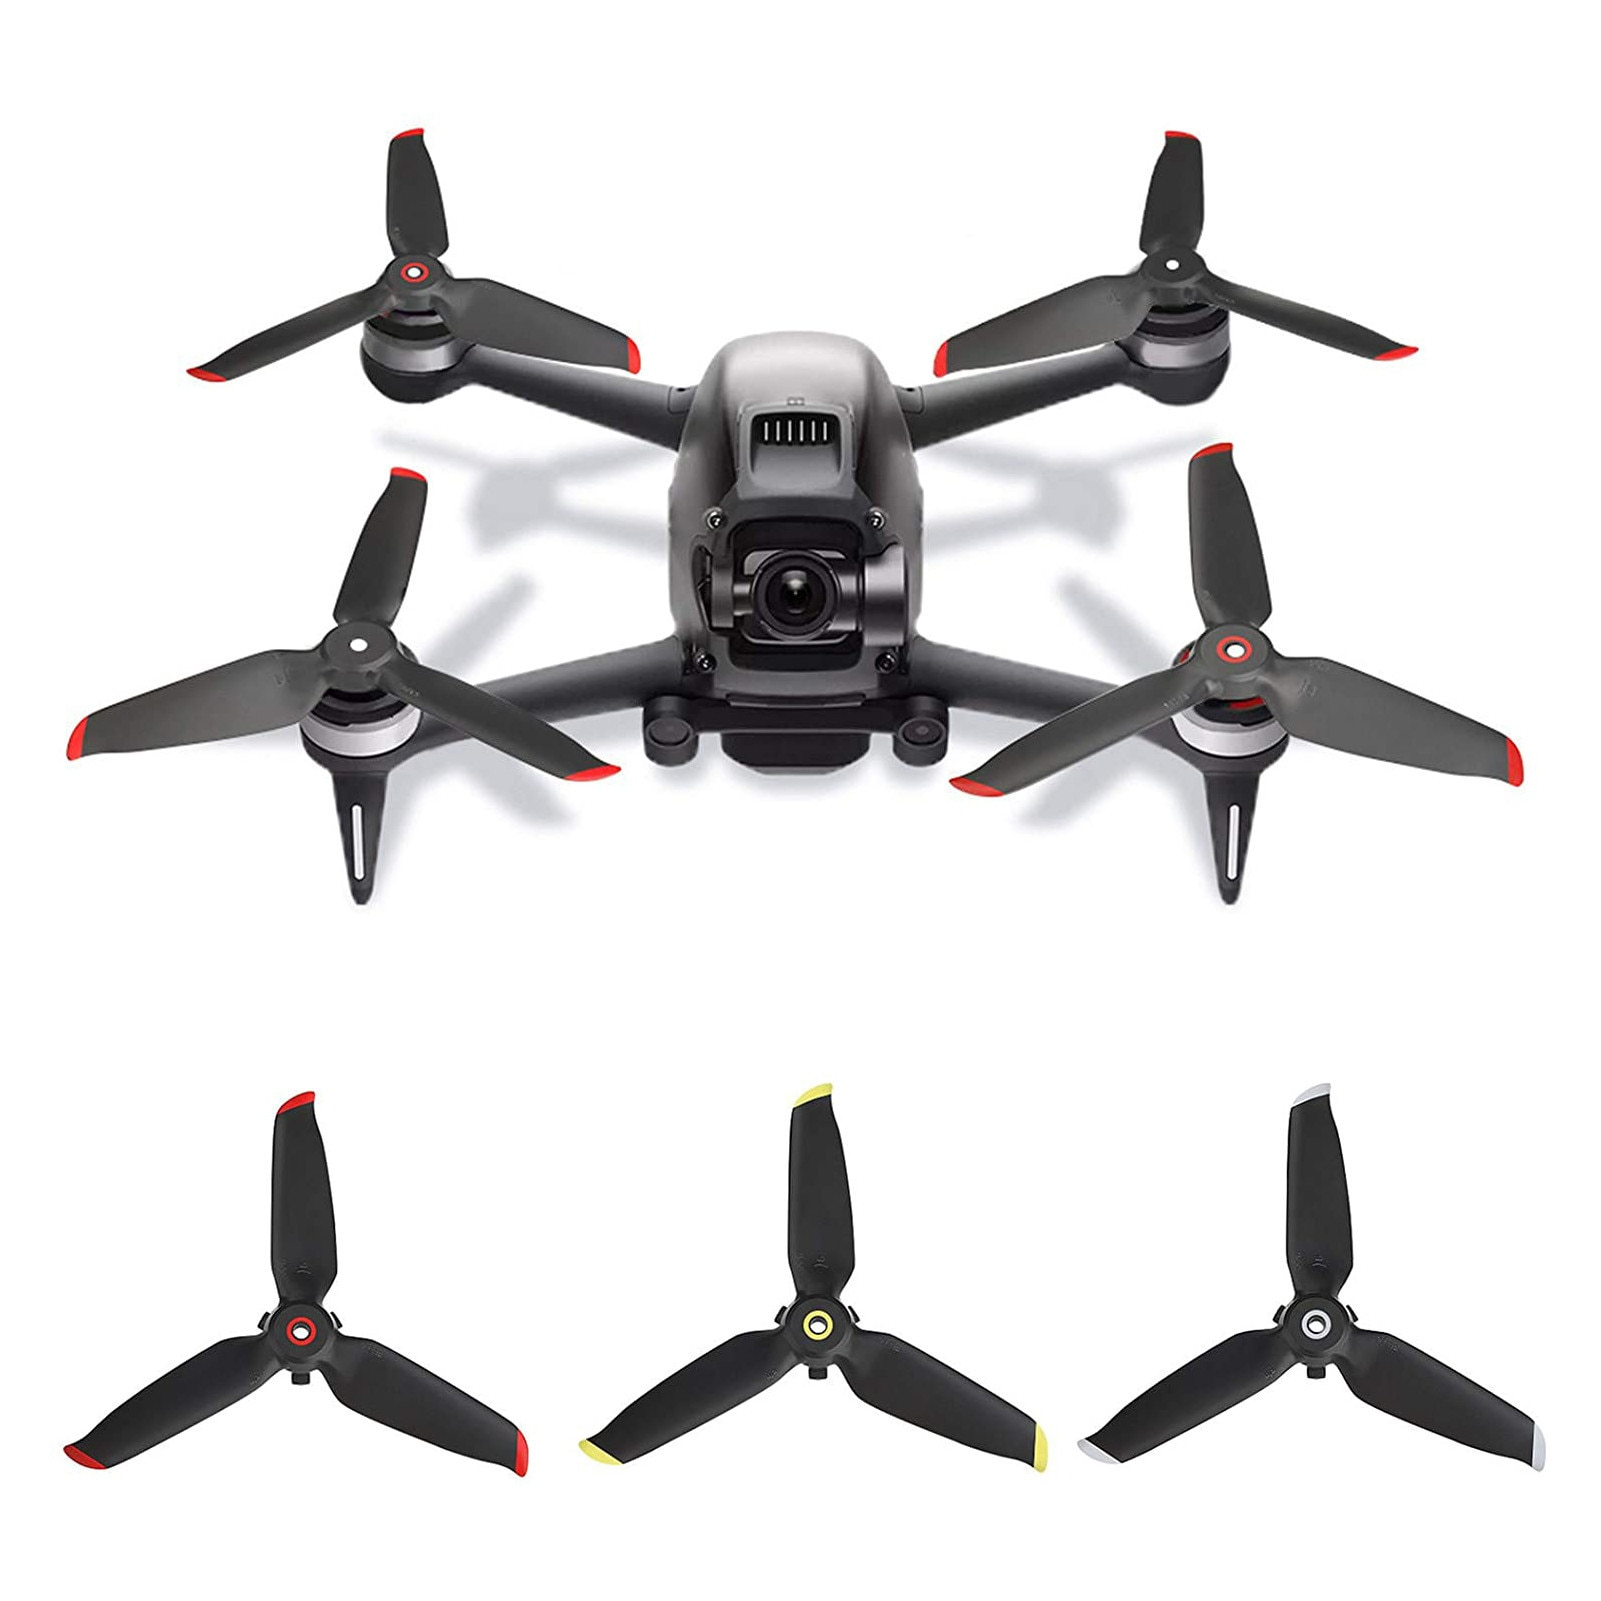 20pcs 10 pairs kingkong 5040 5x4x3 3 blade props tri props propellers fpv racer quadcopter qav x qavr dalprop dys 5040 4 Pair Propellers Props Blade RC Drone Spare Parts Quadcopter Replacement Accessories For DJI FPV Combo Drone